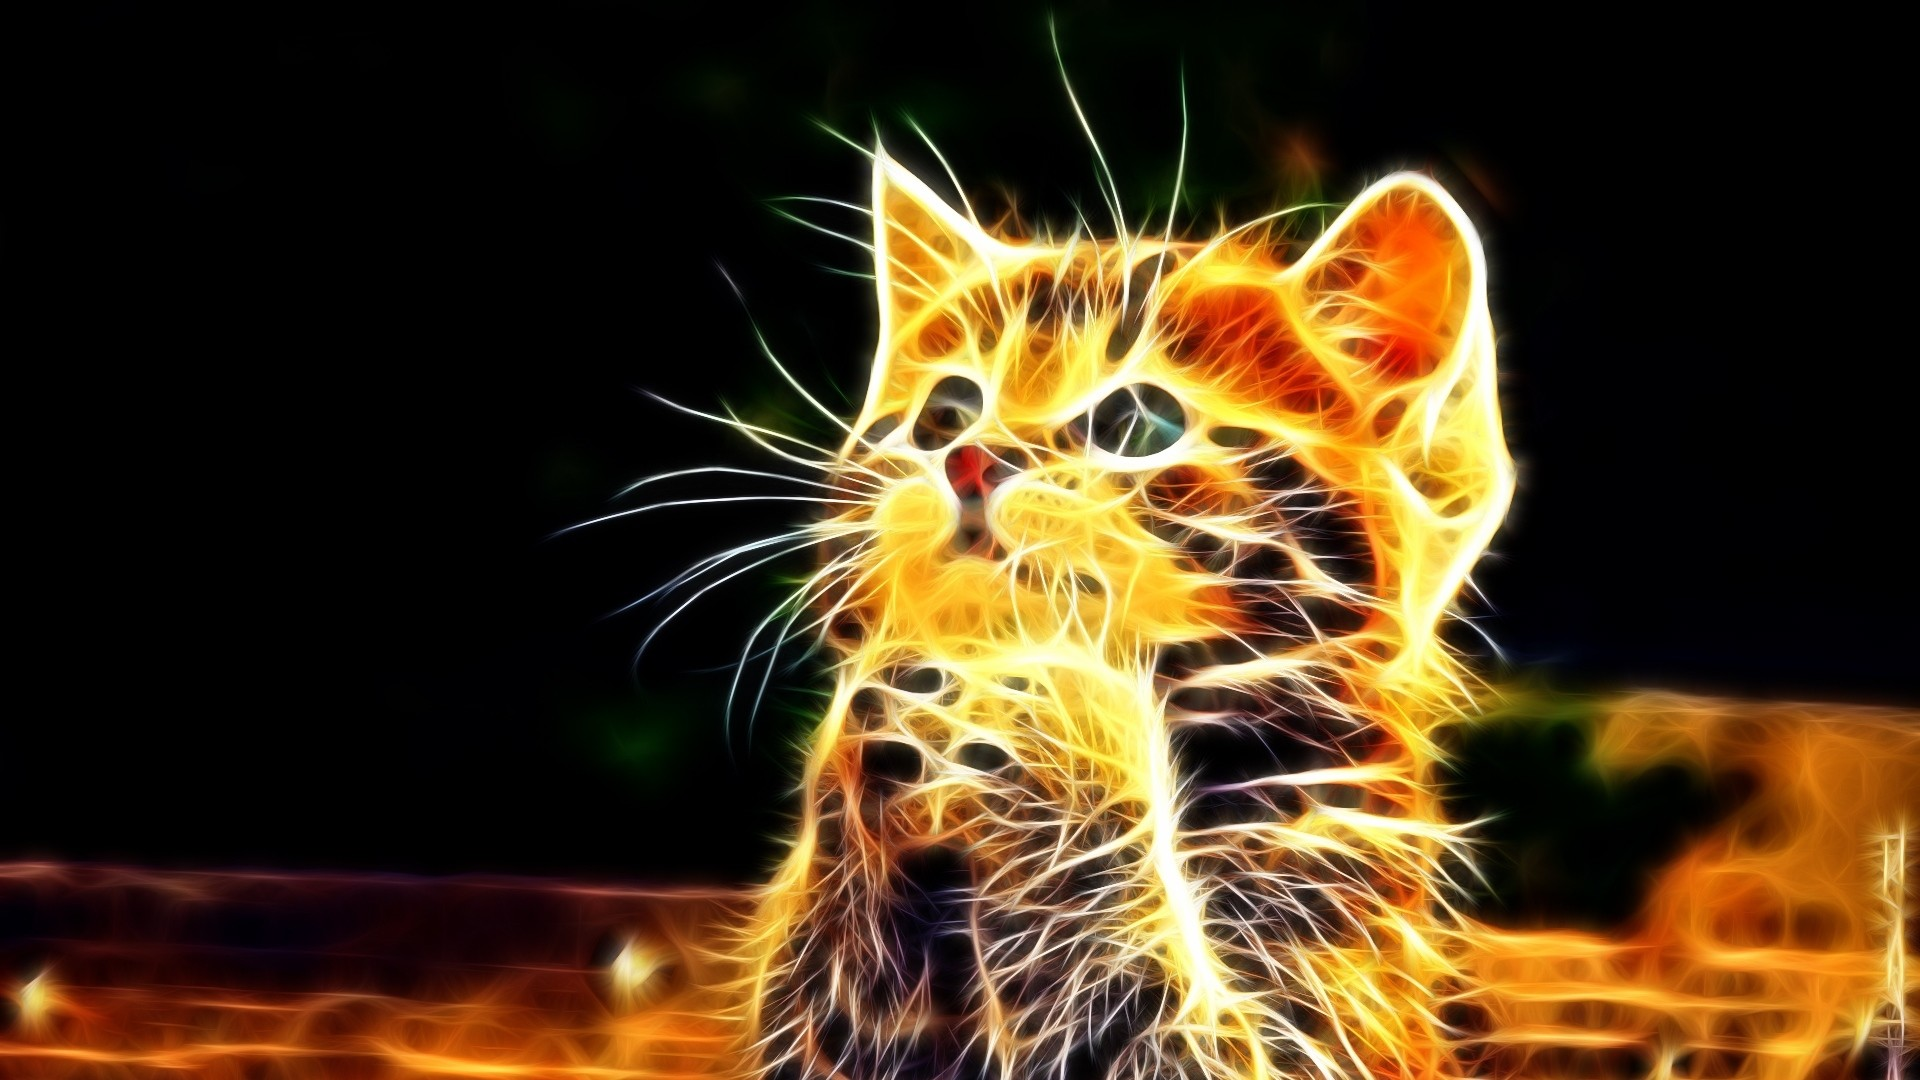 Related Wallpapers kitty, furry. Preview kitty